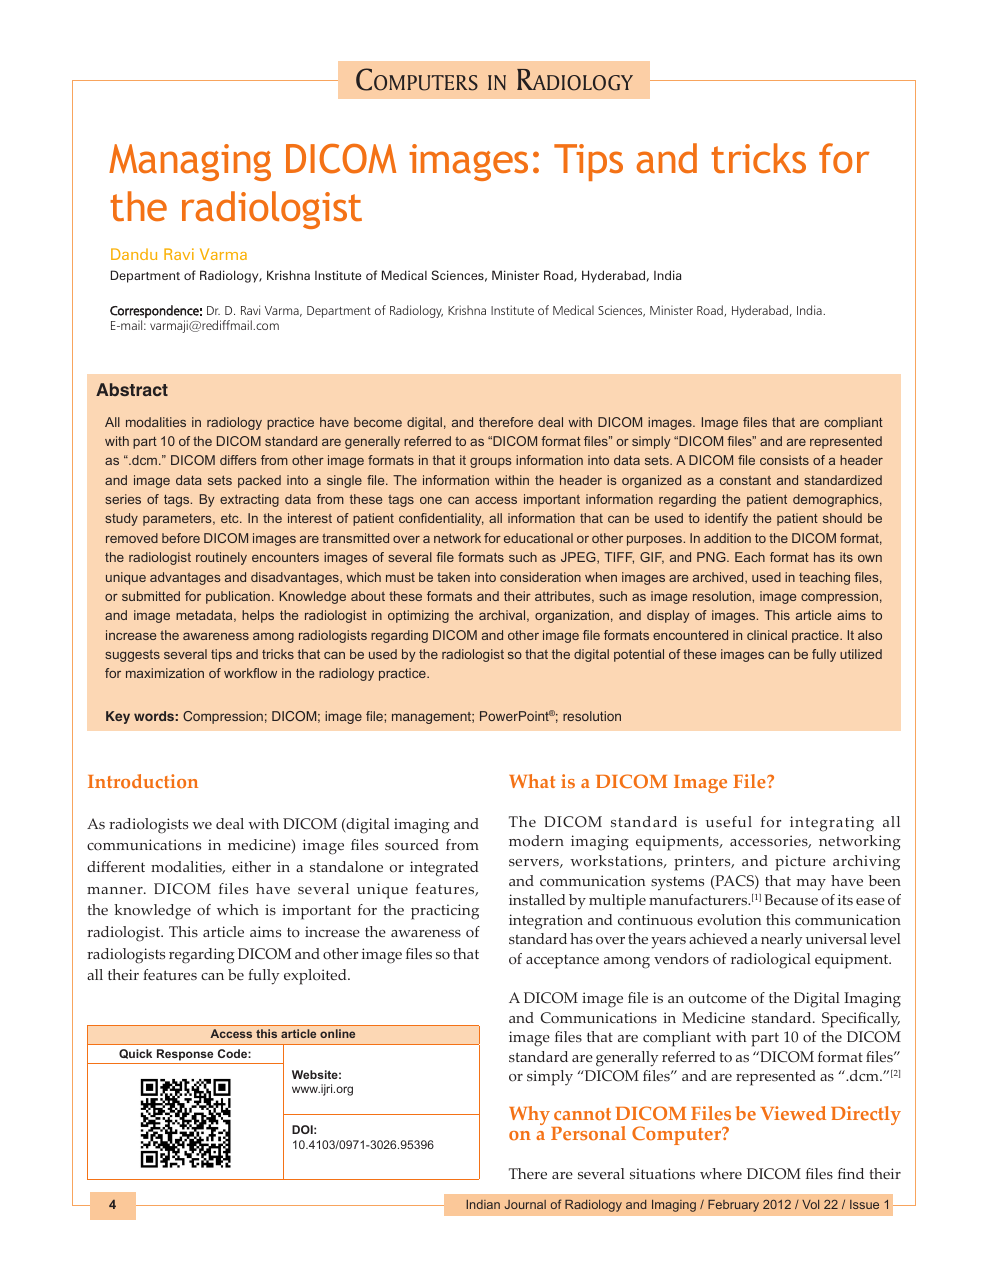 Managing DICOM images: Tips and tricks for the radiologist – topic